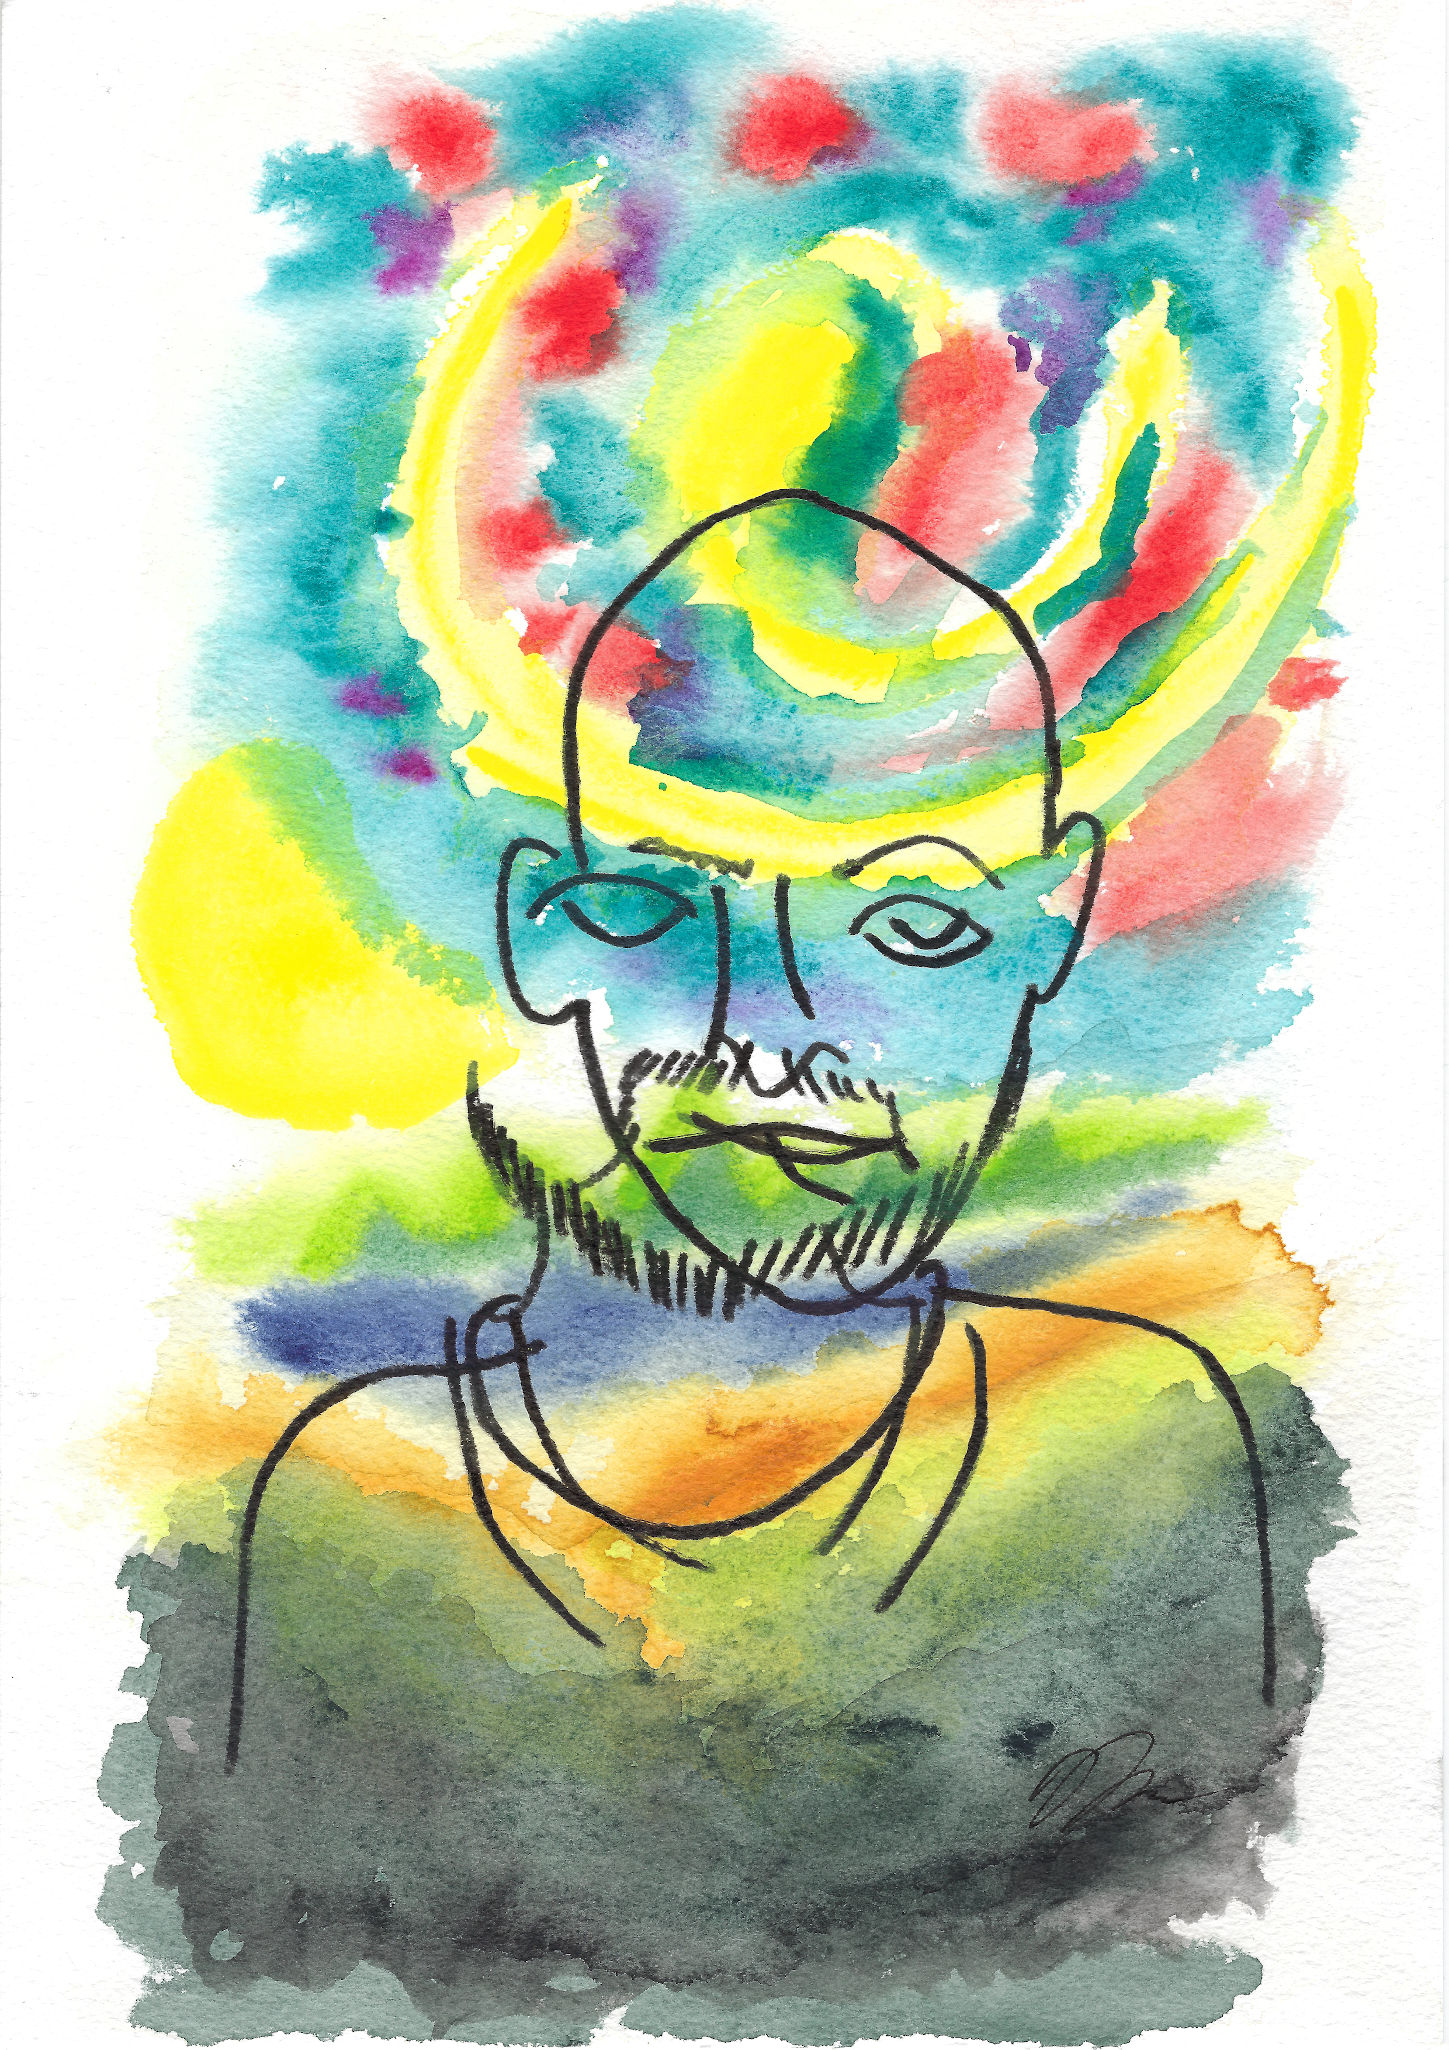 Watercolor painting and contour line drawing self portrait.